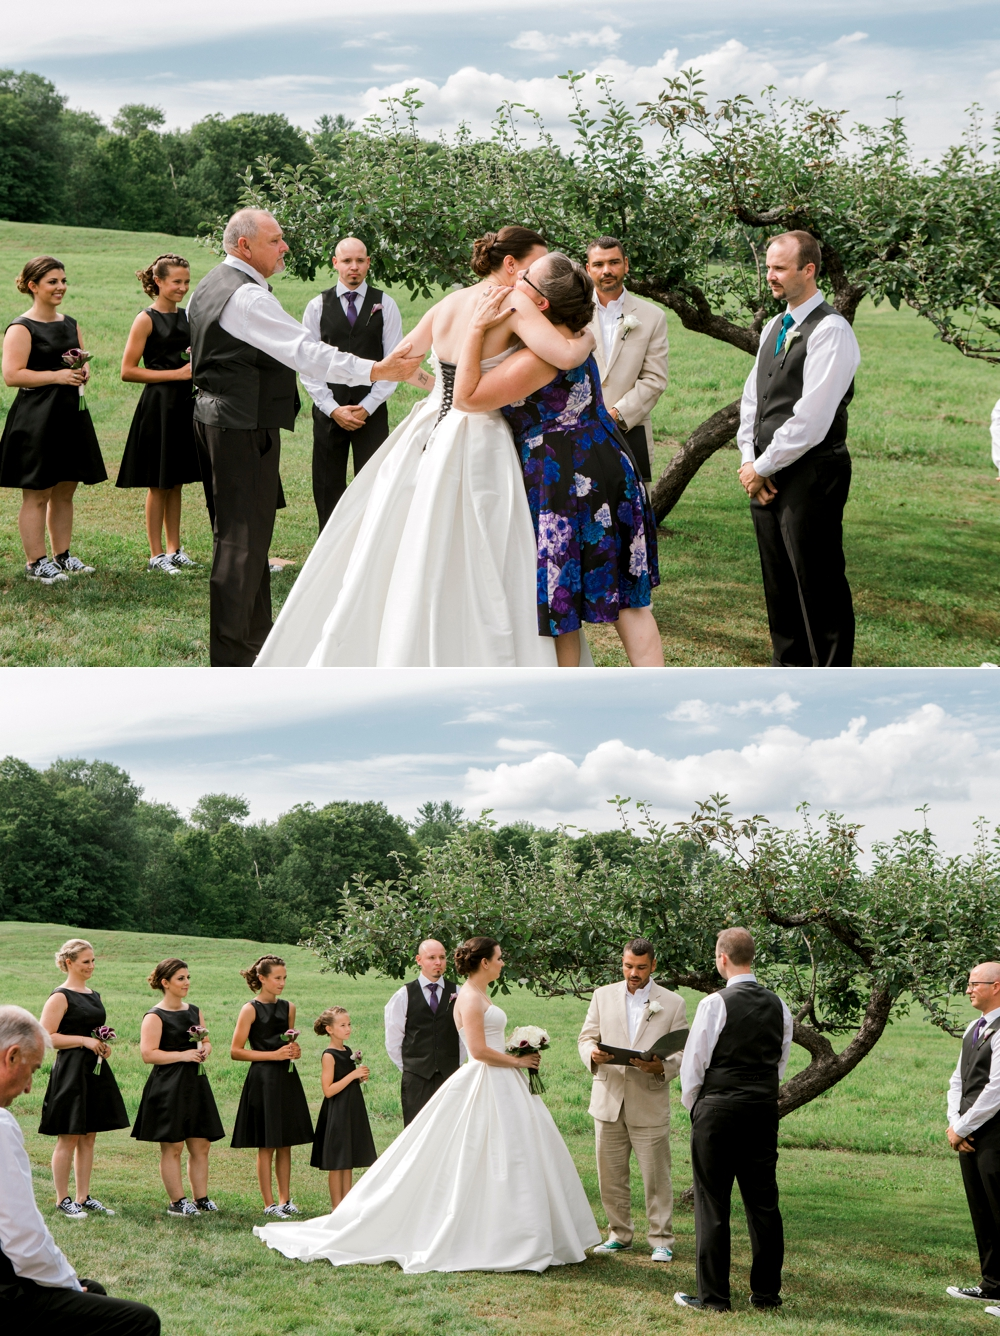 SomerbyJonesPhotography__VermontWedding_VTWedding_BackyardVermontWedding_0013.jpg